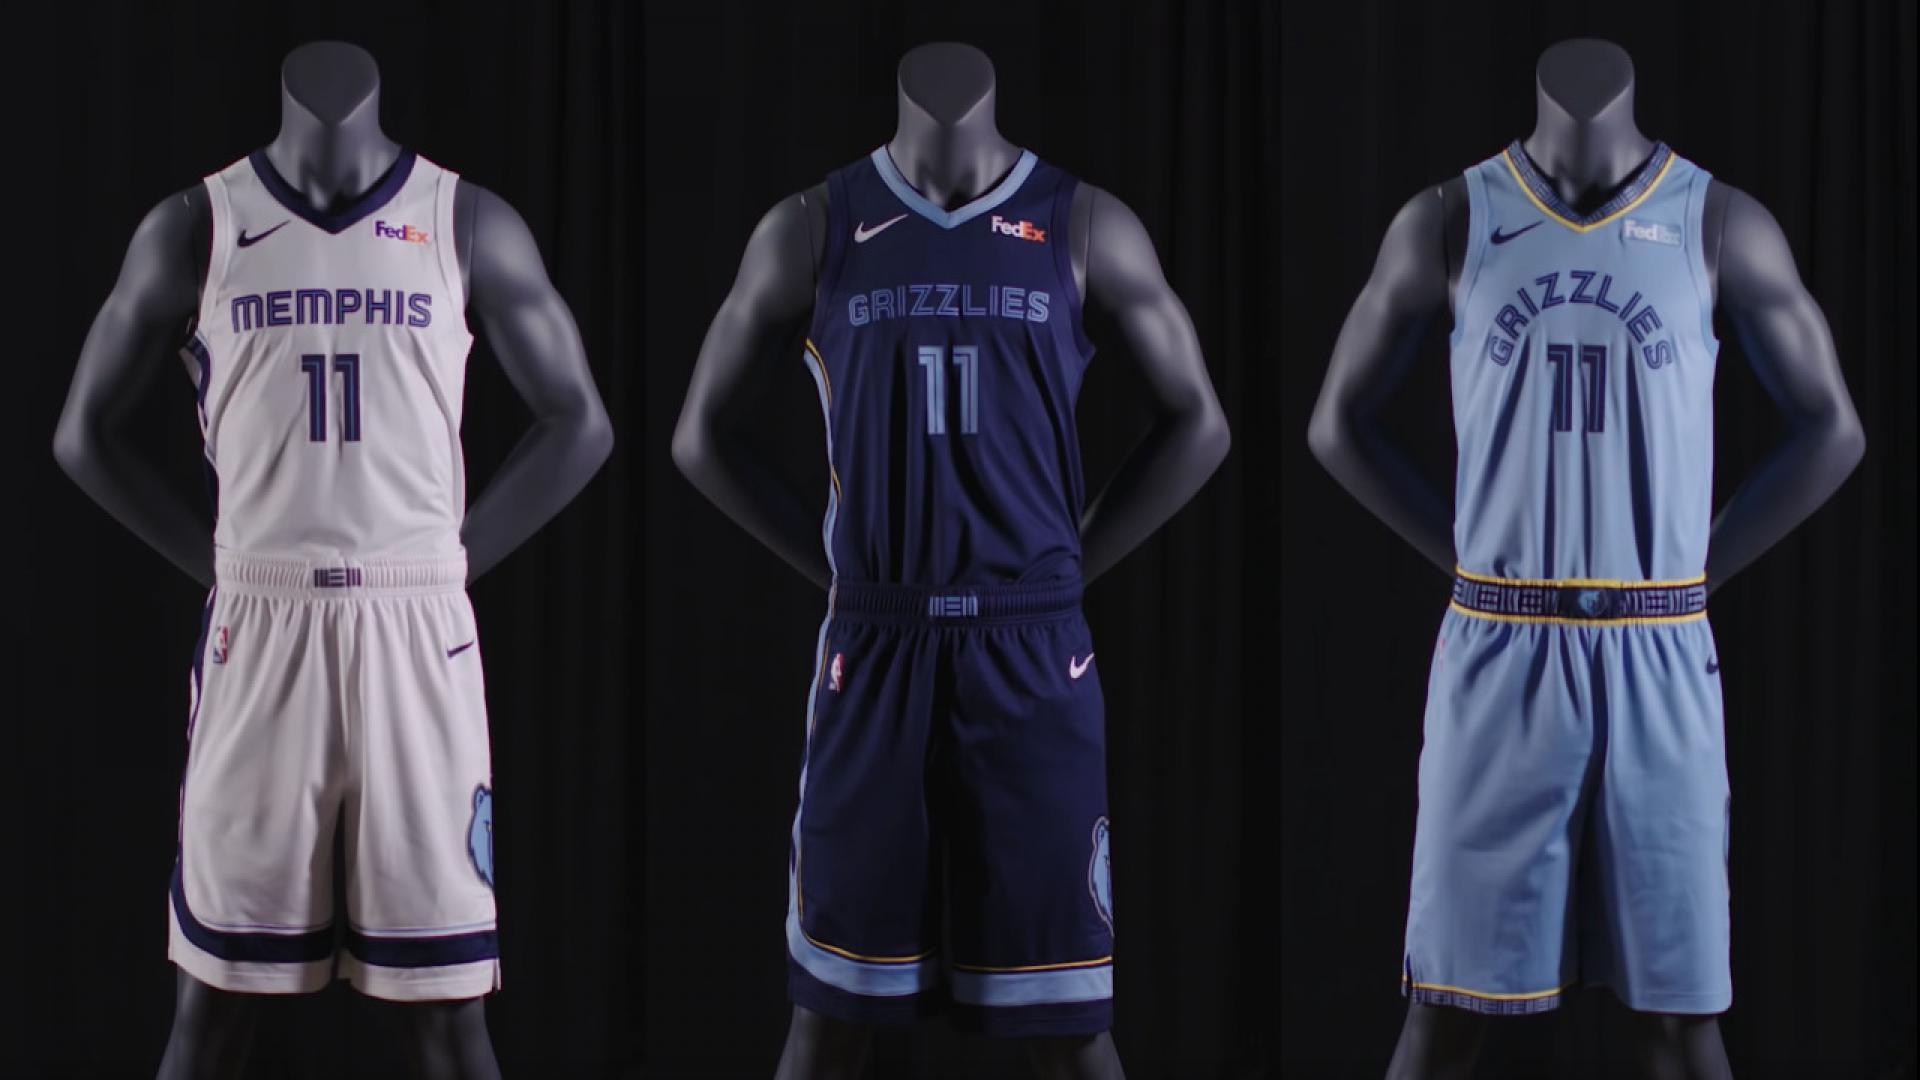 sale retailer 0c2aa 3e9ac Memphis Grizzlies unveil new uniforms with FedEx as jersey ...